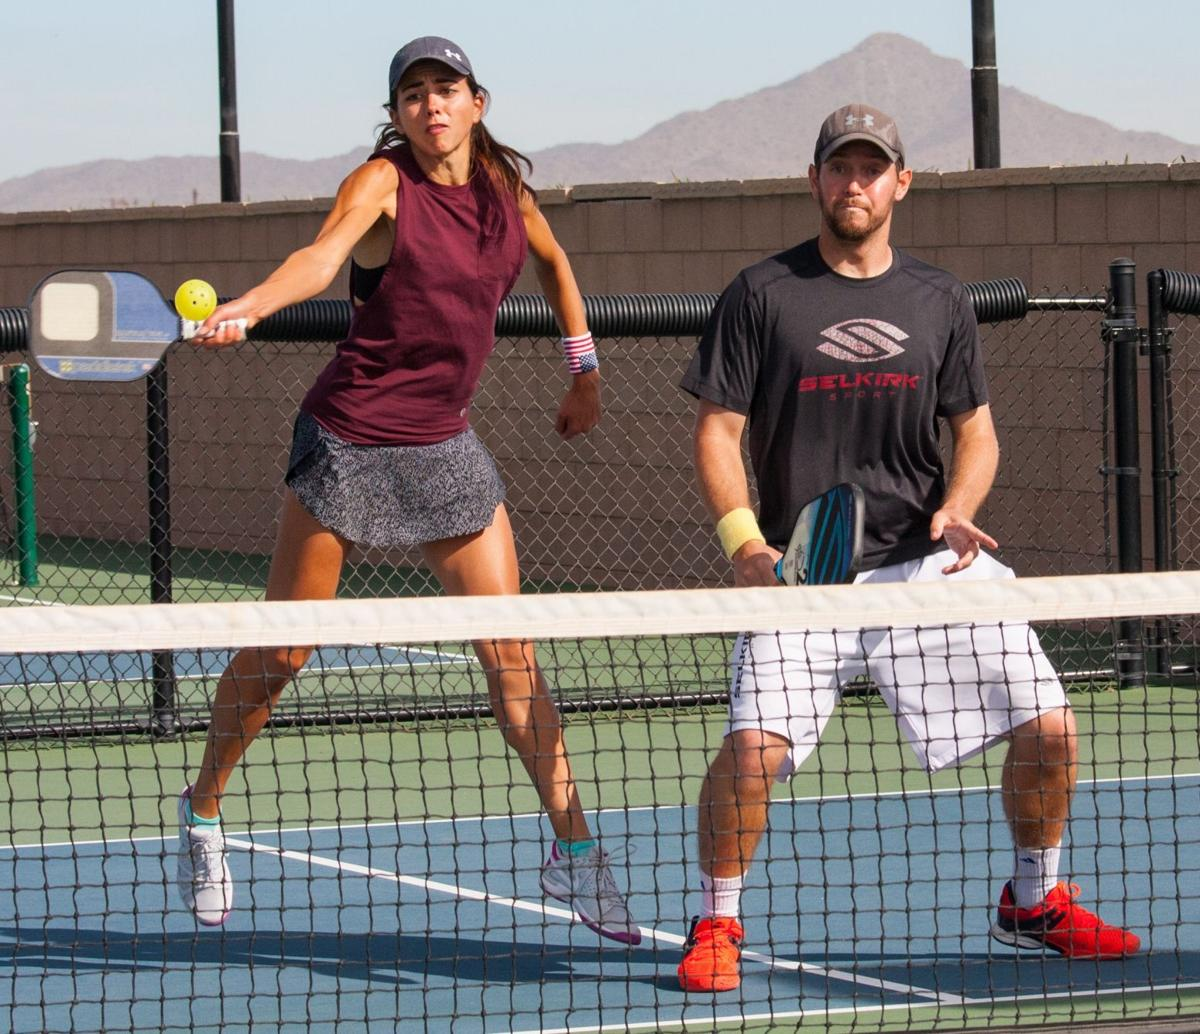 Let's talk pickleball   The exciting game of pickleball ...